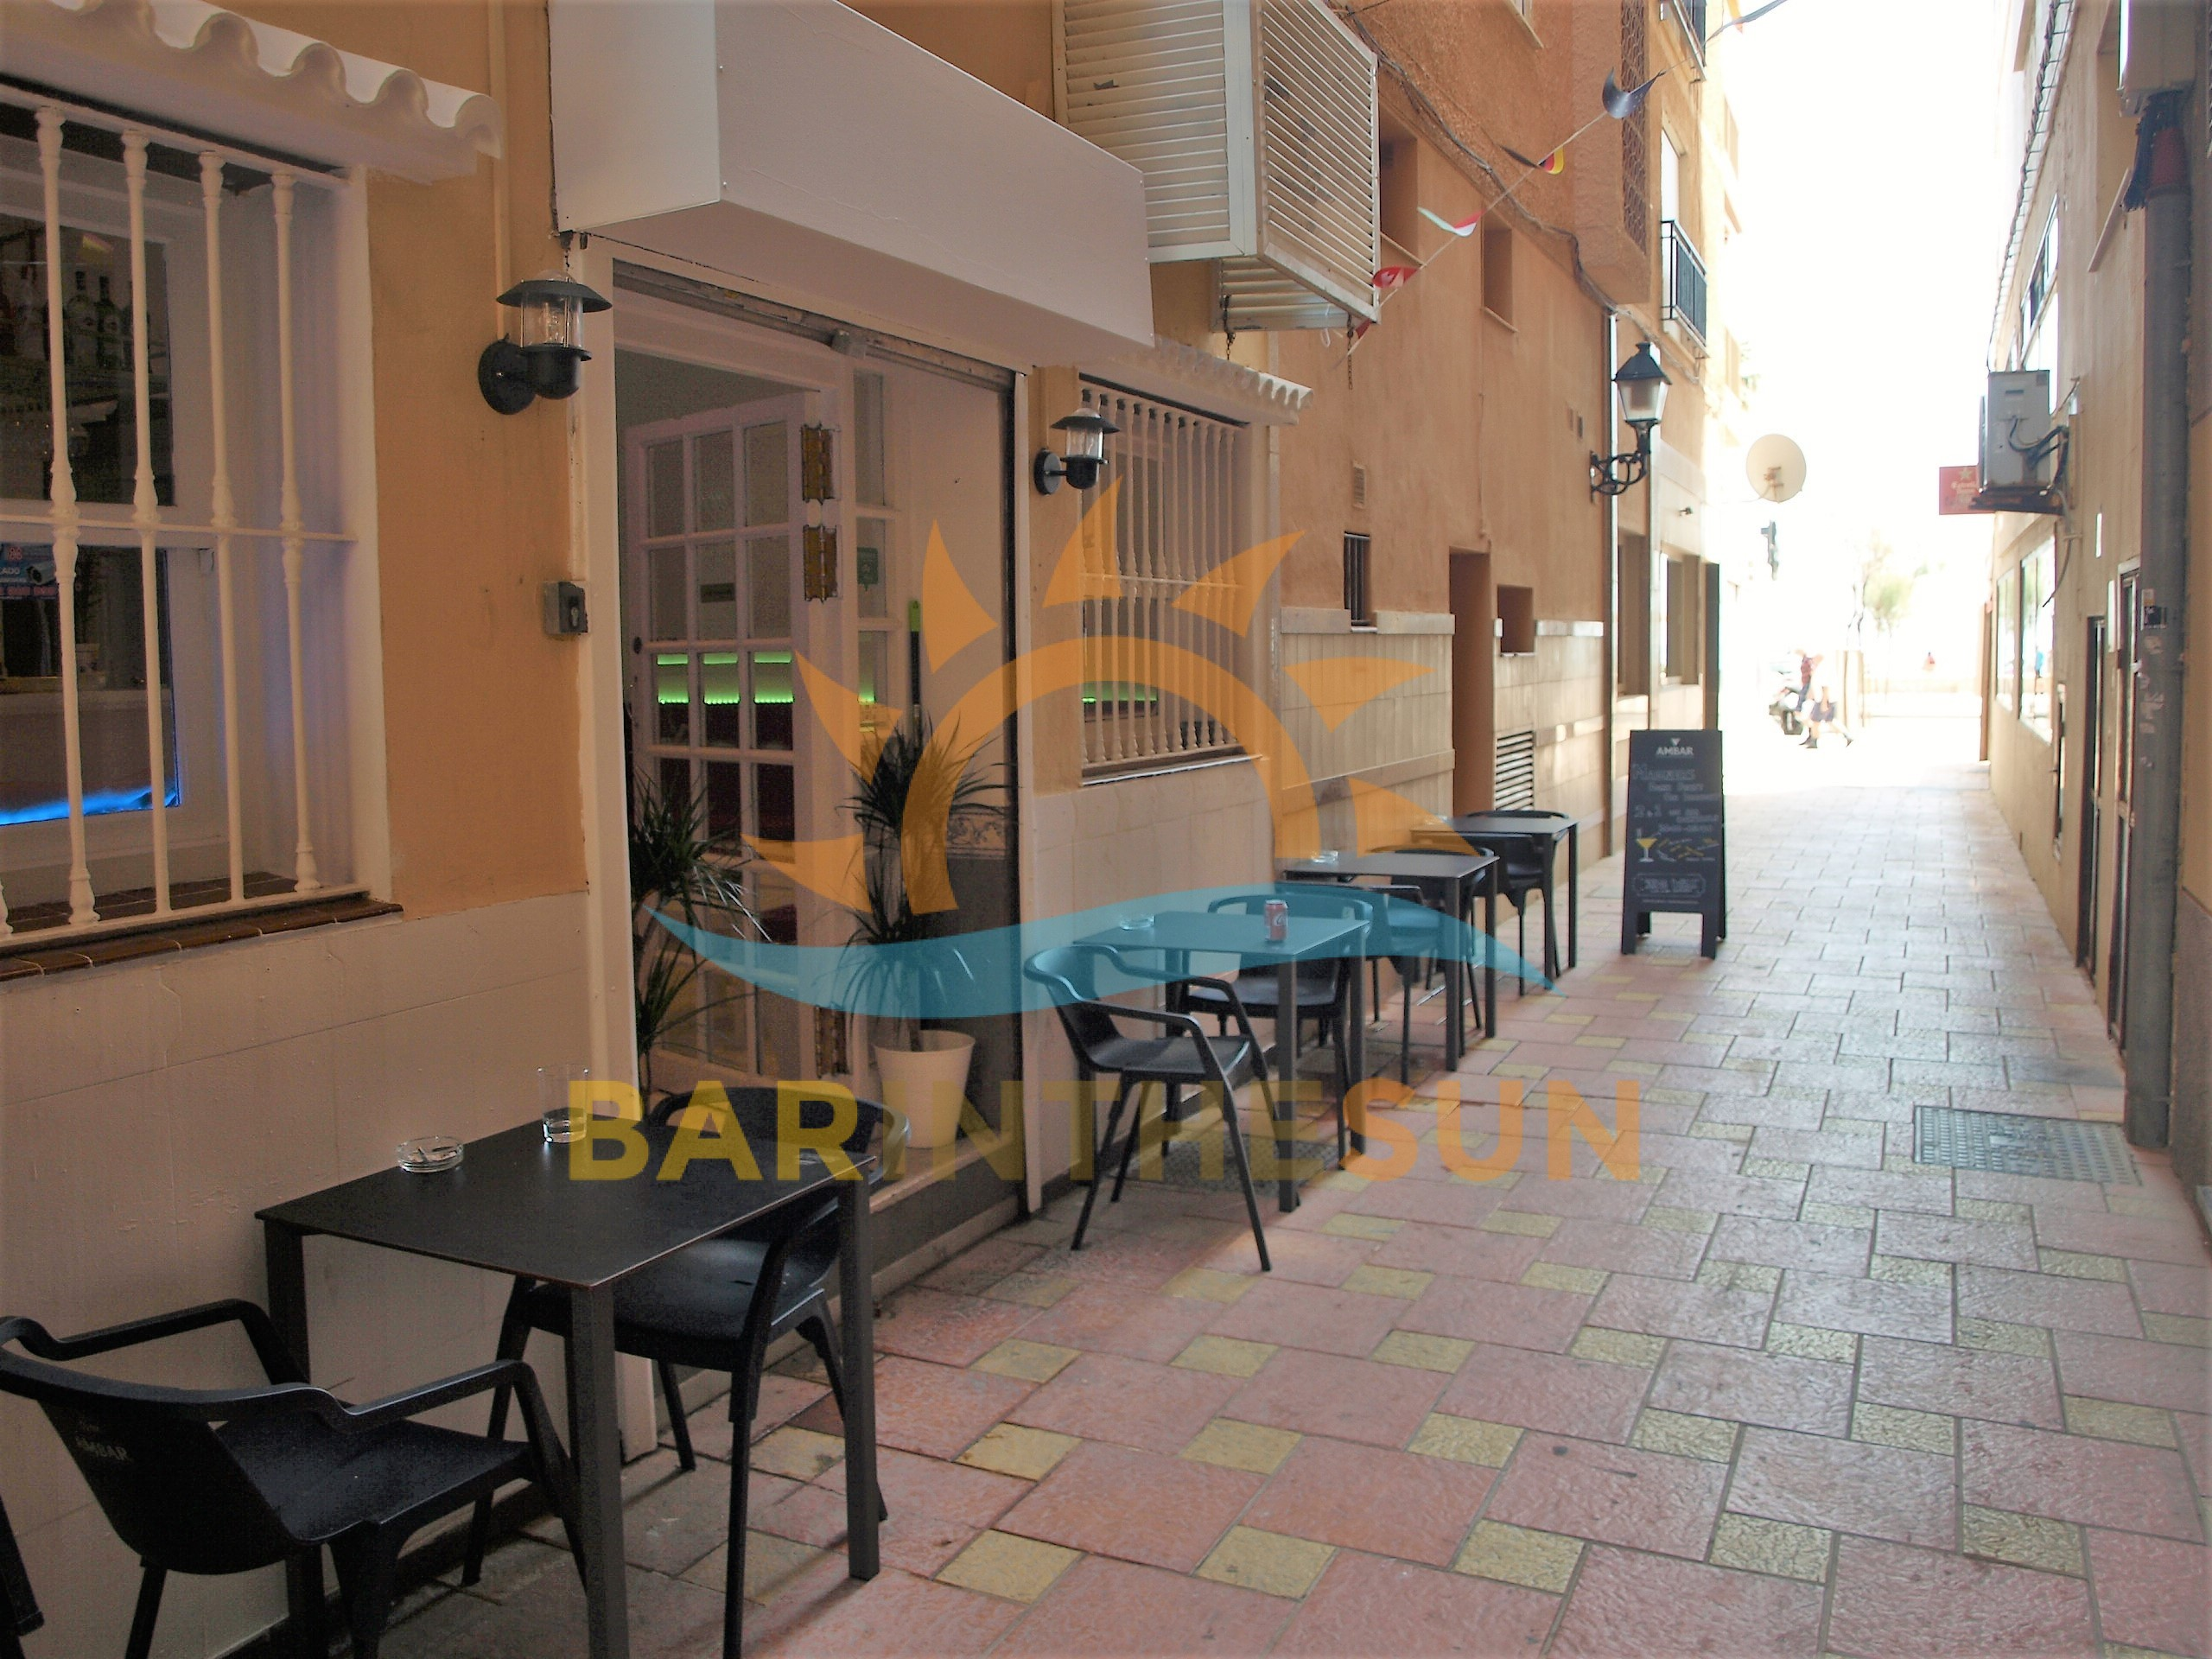 Bargain Priced Freehold Cafe Bars For Sale in Los Boliches on The Costa del Sol